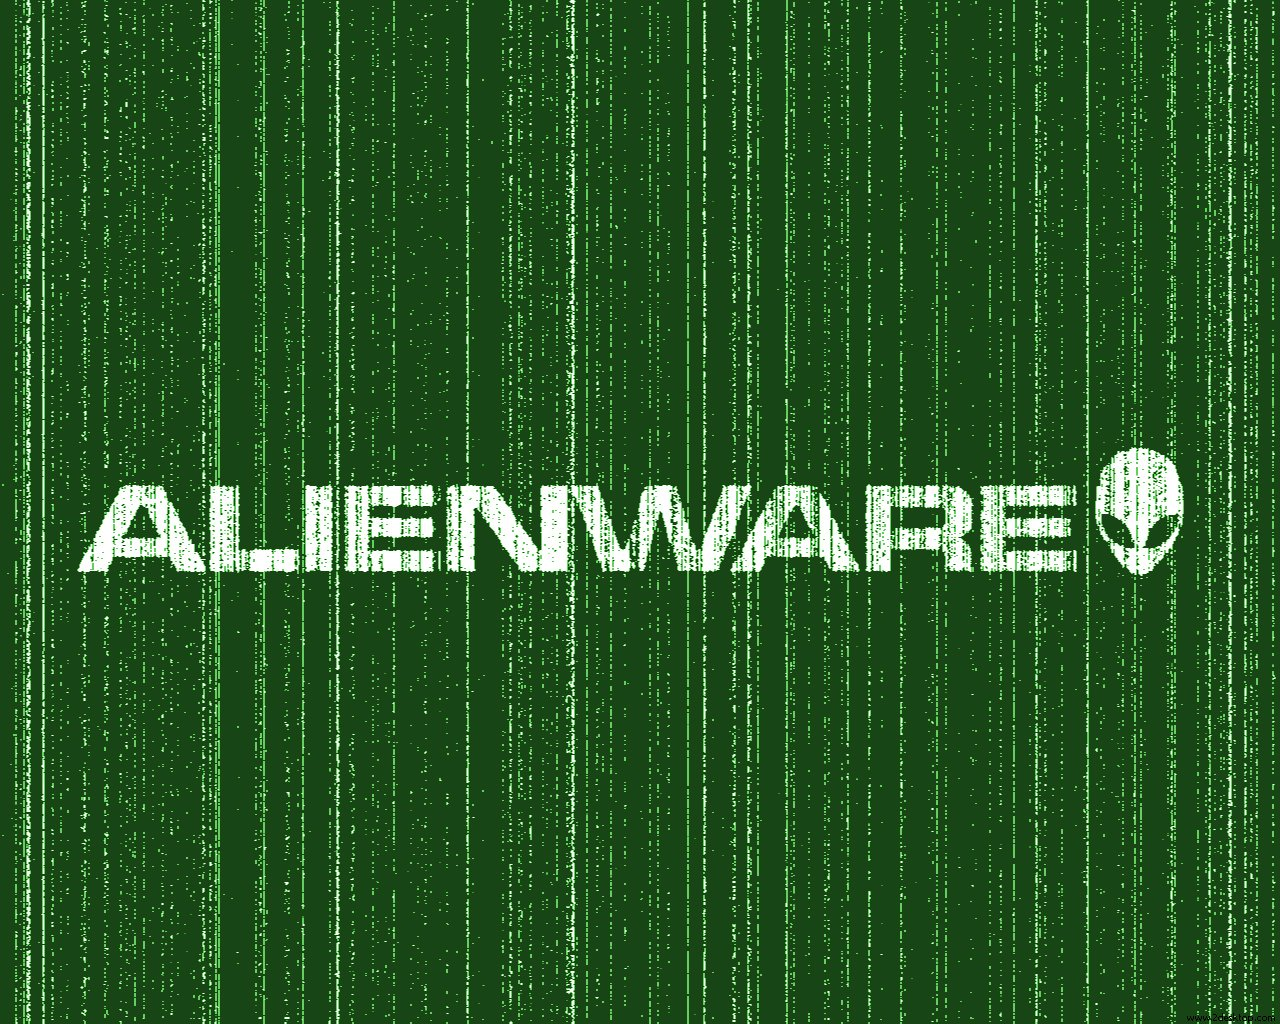 Green Alienware Wallpaper geekpediacom 1280x1024